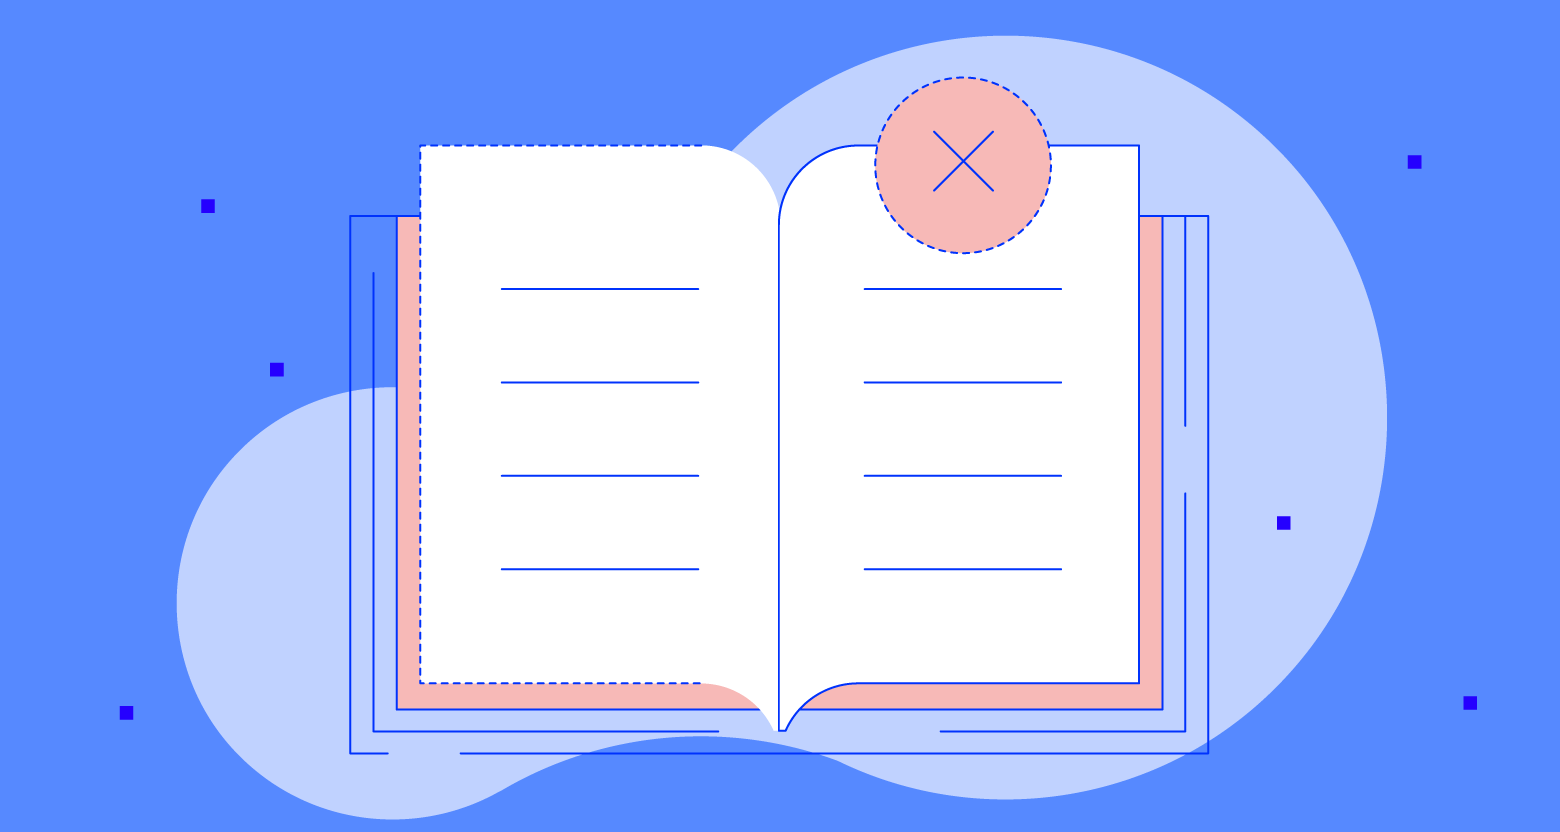 Book of rules with an x on the book.